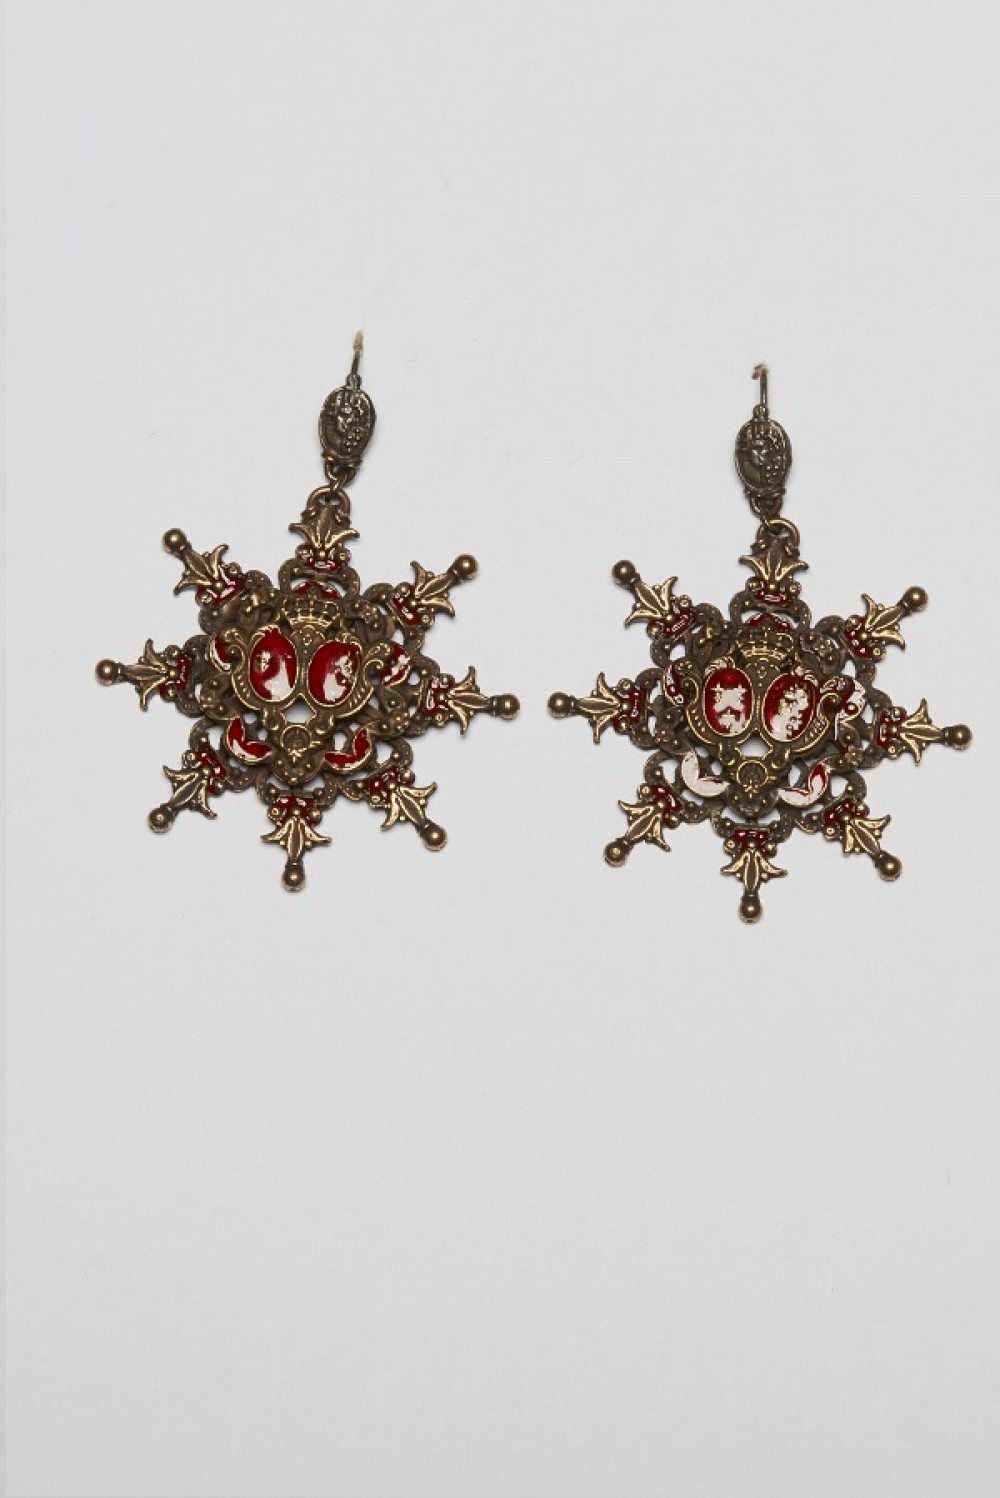 Pendant earrings with red stone